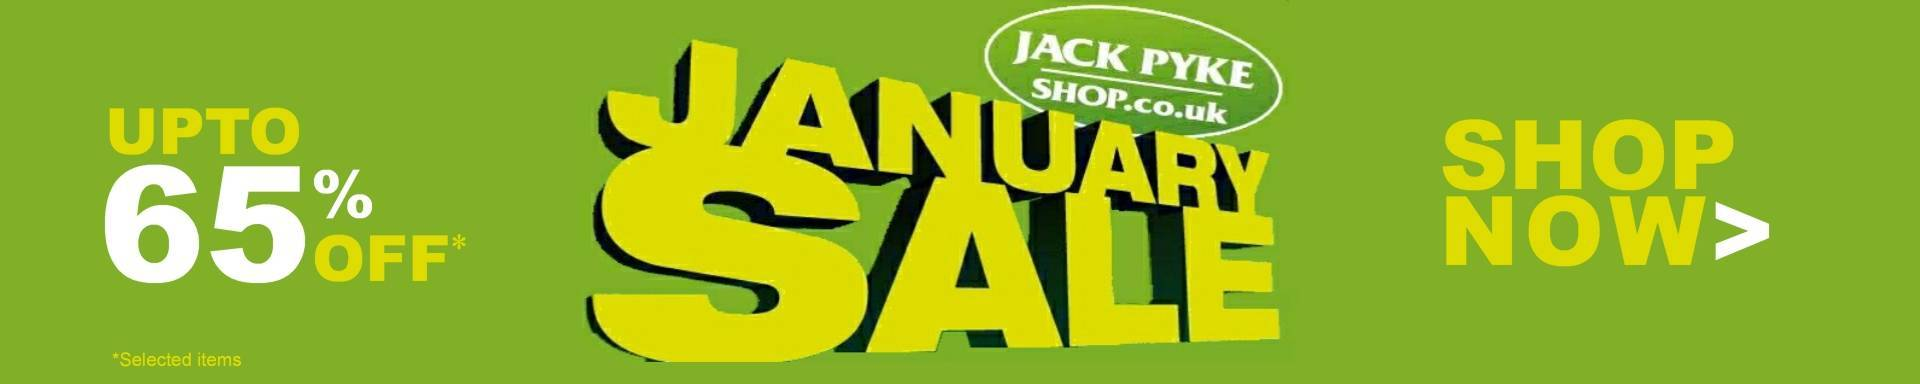 Jack Pyke Clothing Sale